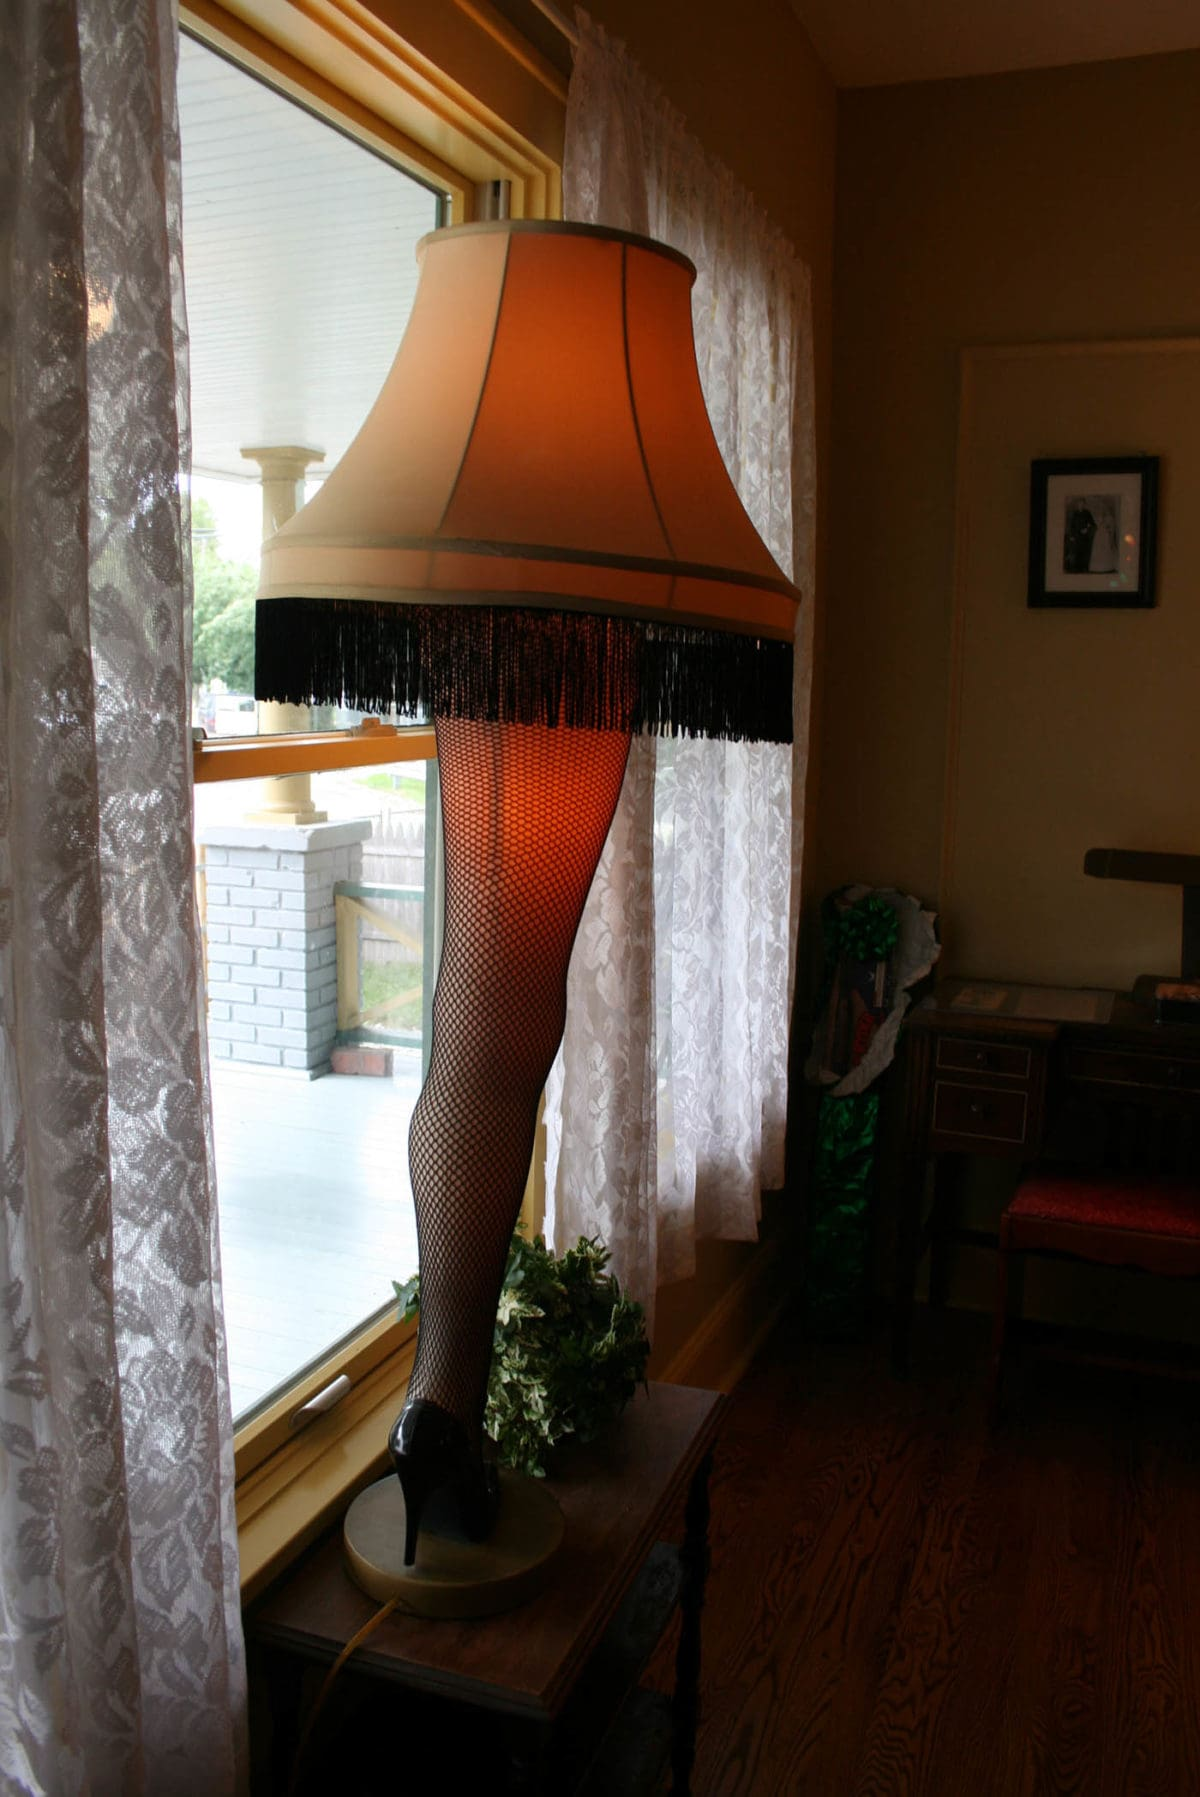 Leg Lamp in A Christmas Story House in Cleveland, Ohio